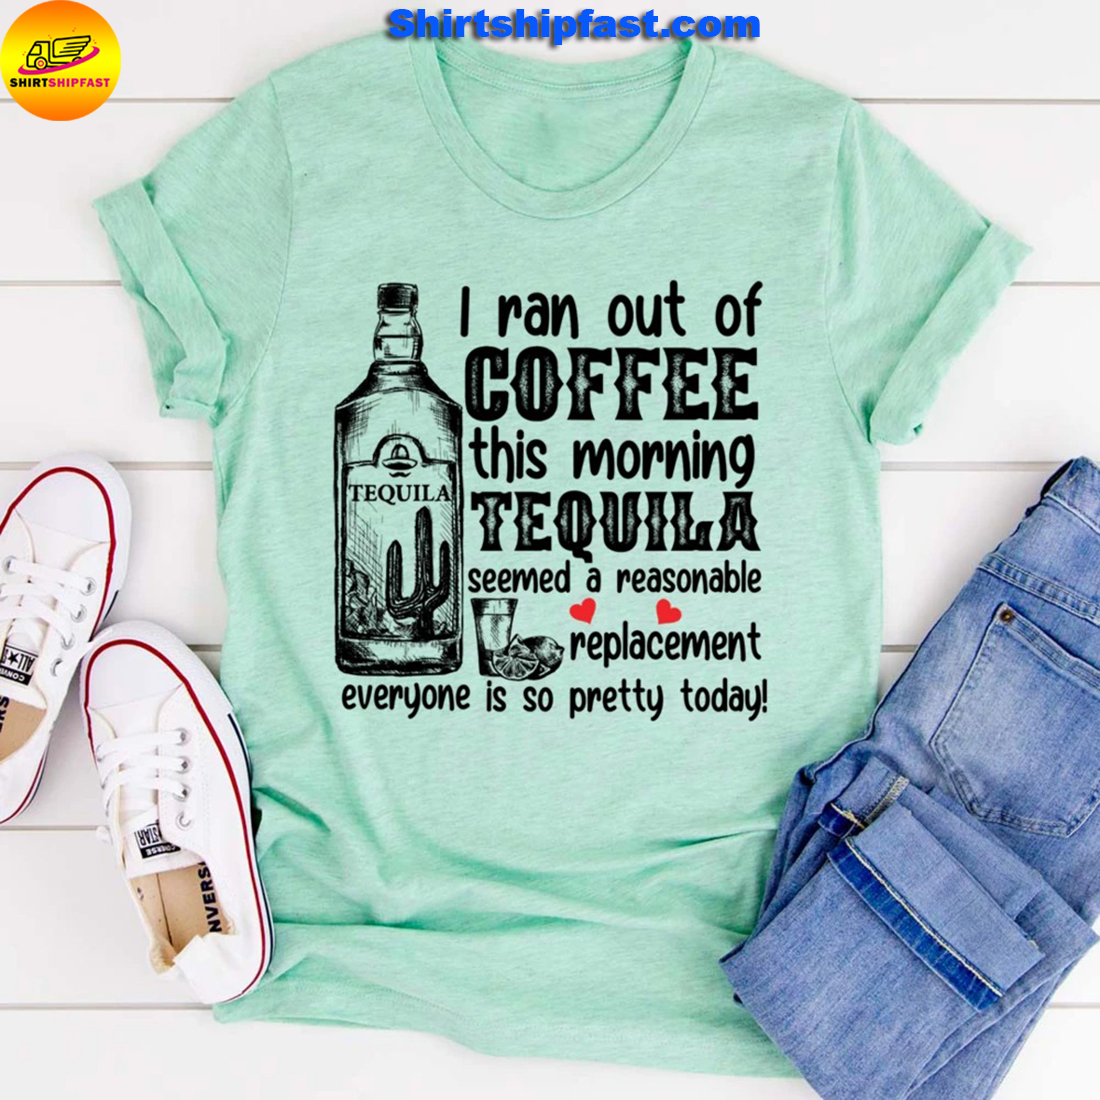 I ran out of coffee this morning tequila seemed a reasonable replacement everyone is so pretty today shirt